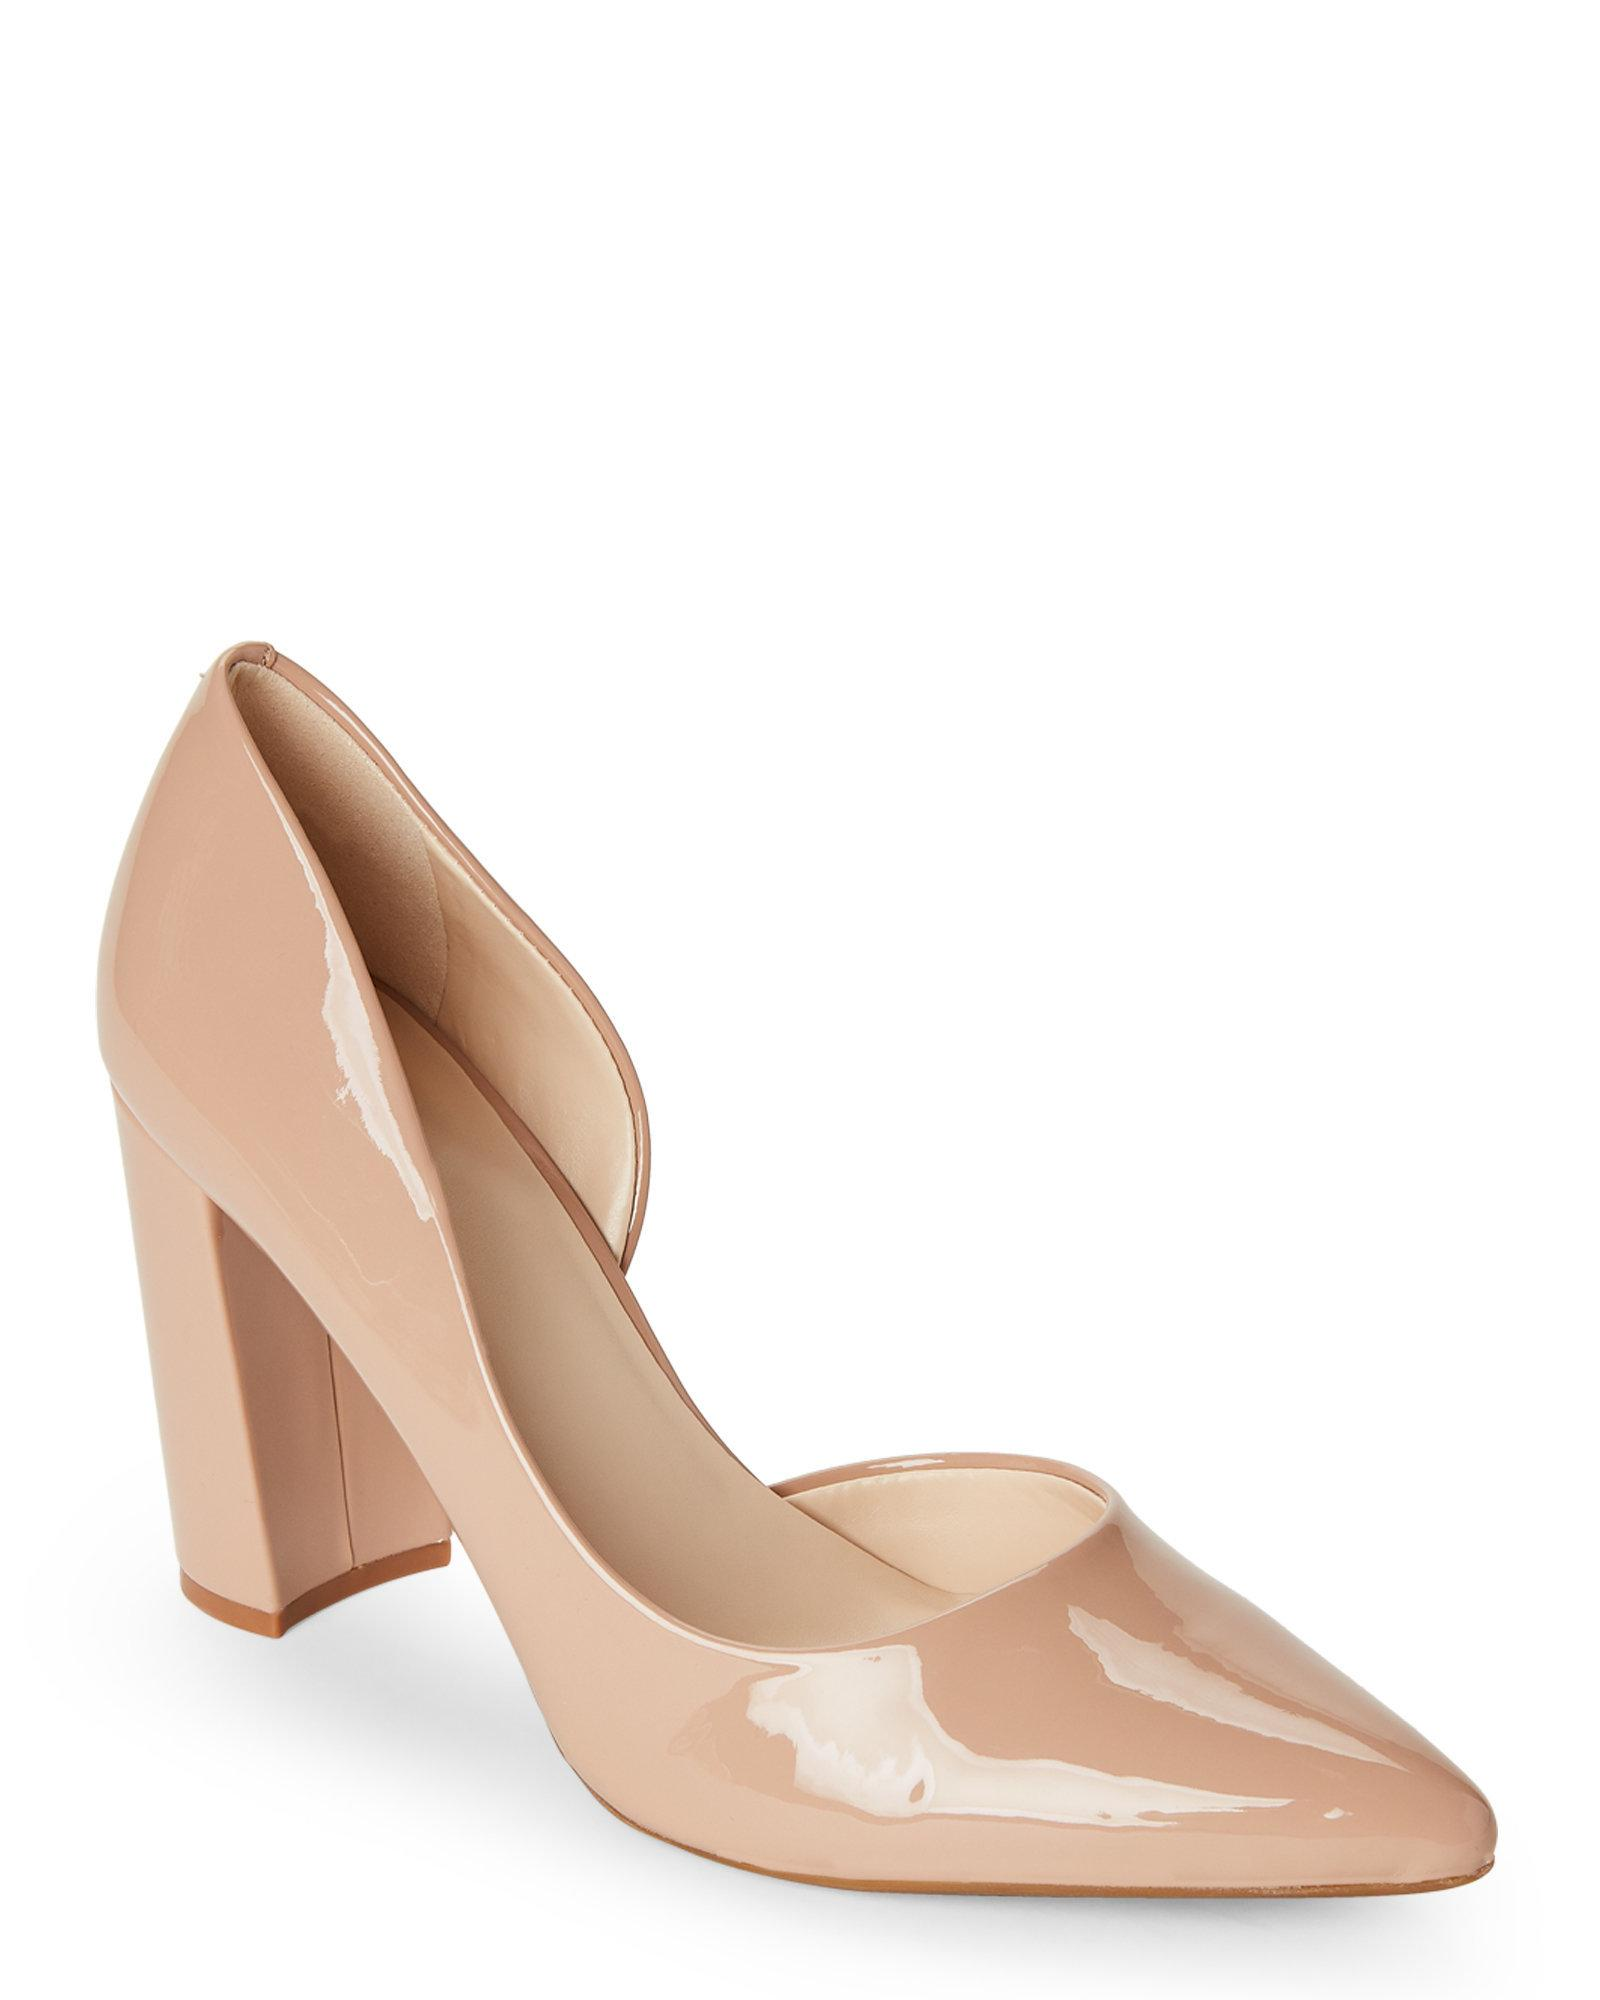 e0b75de322 Nine West Nude Anisa Block Heel D'orsay Pumps in Natural - Lyst